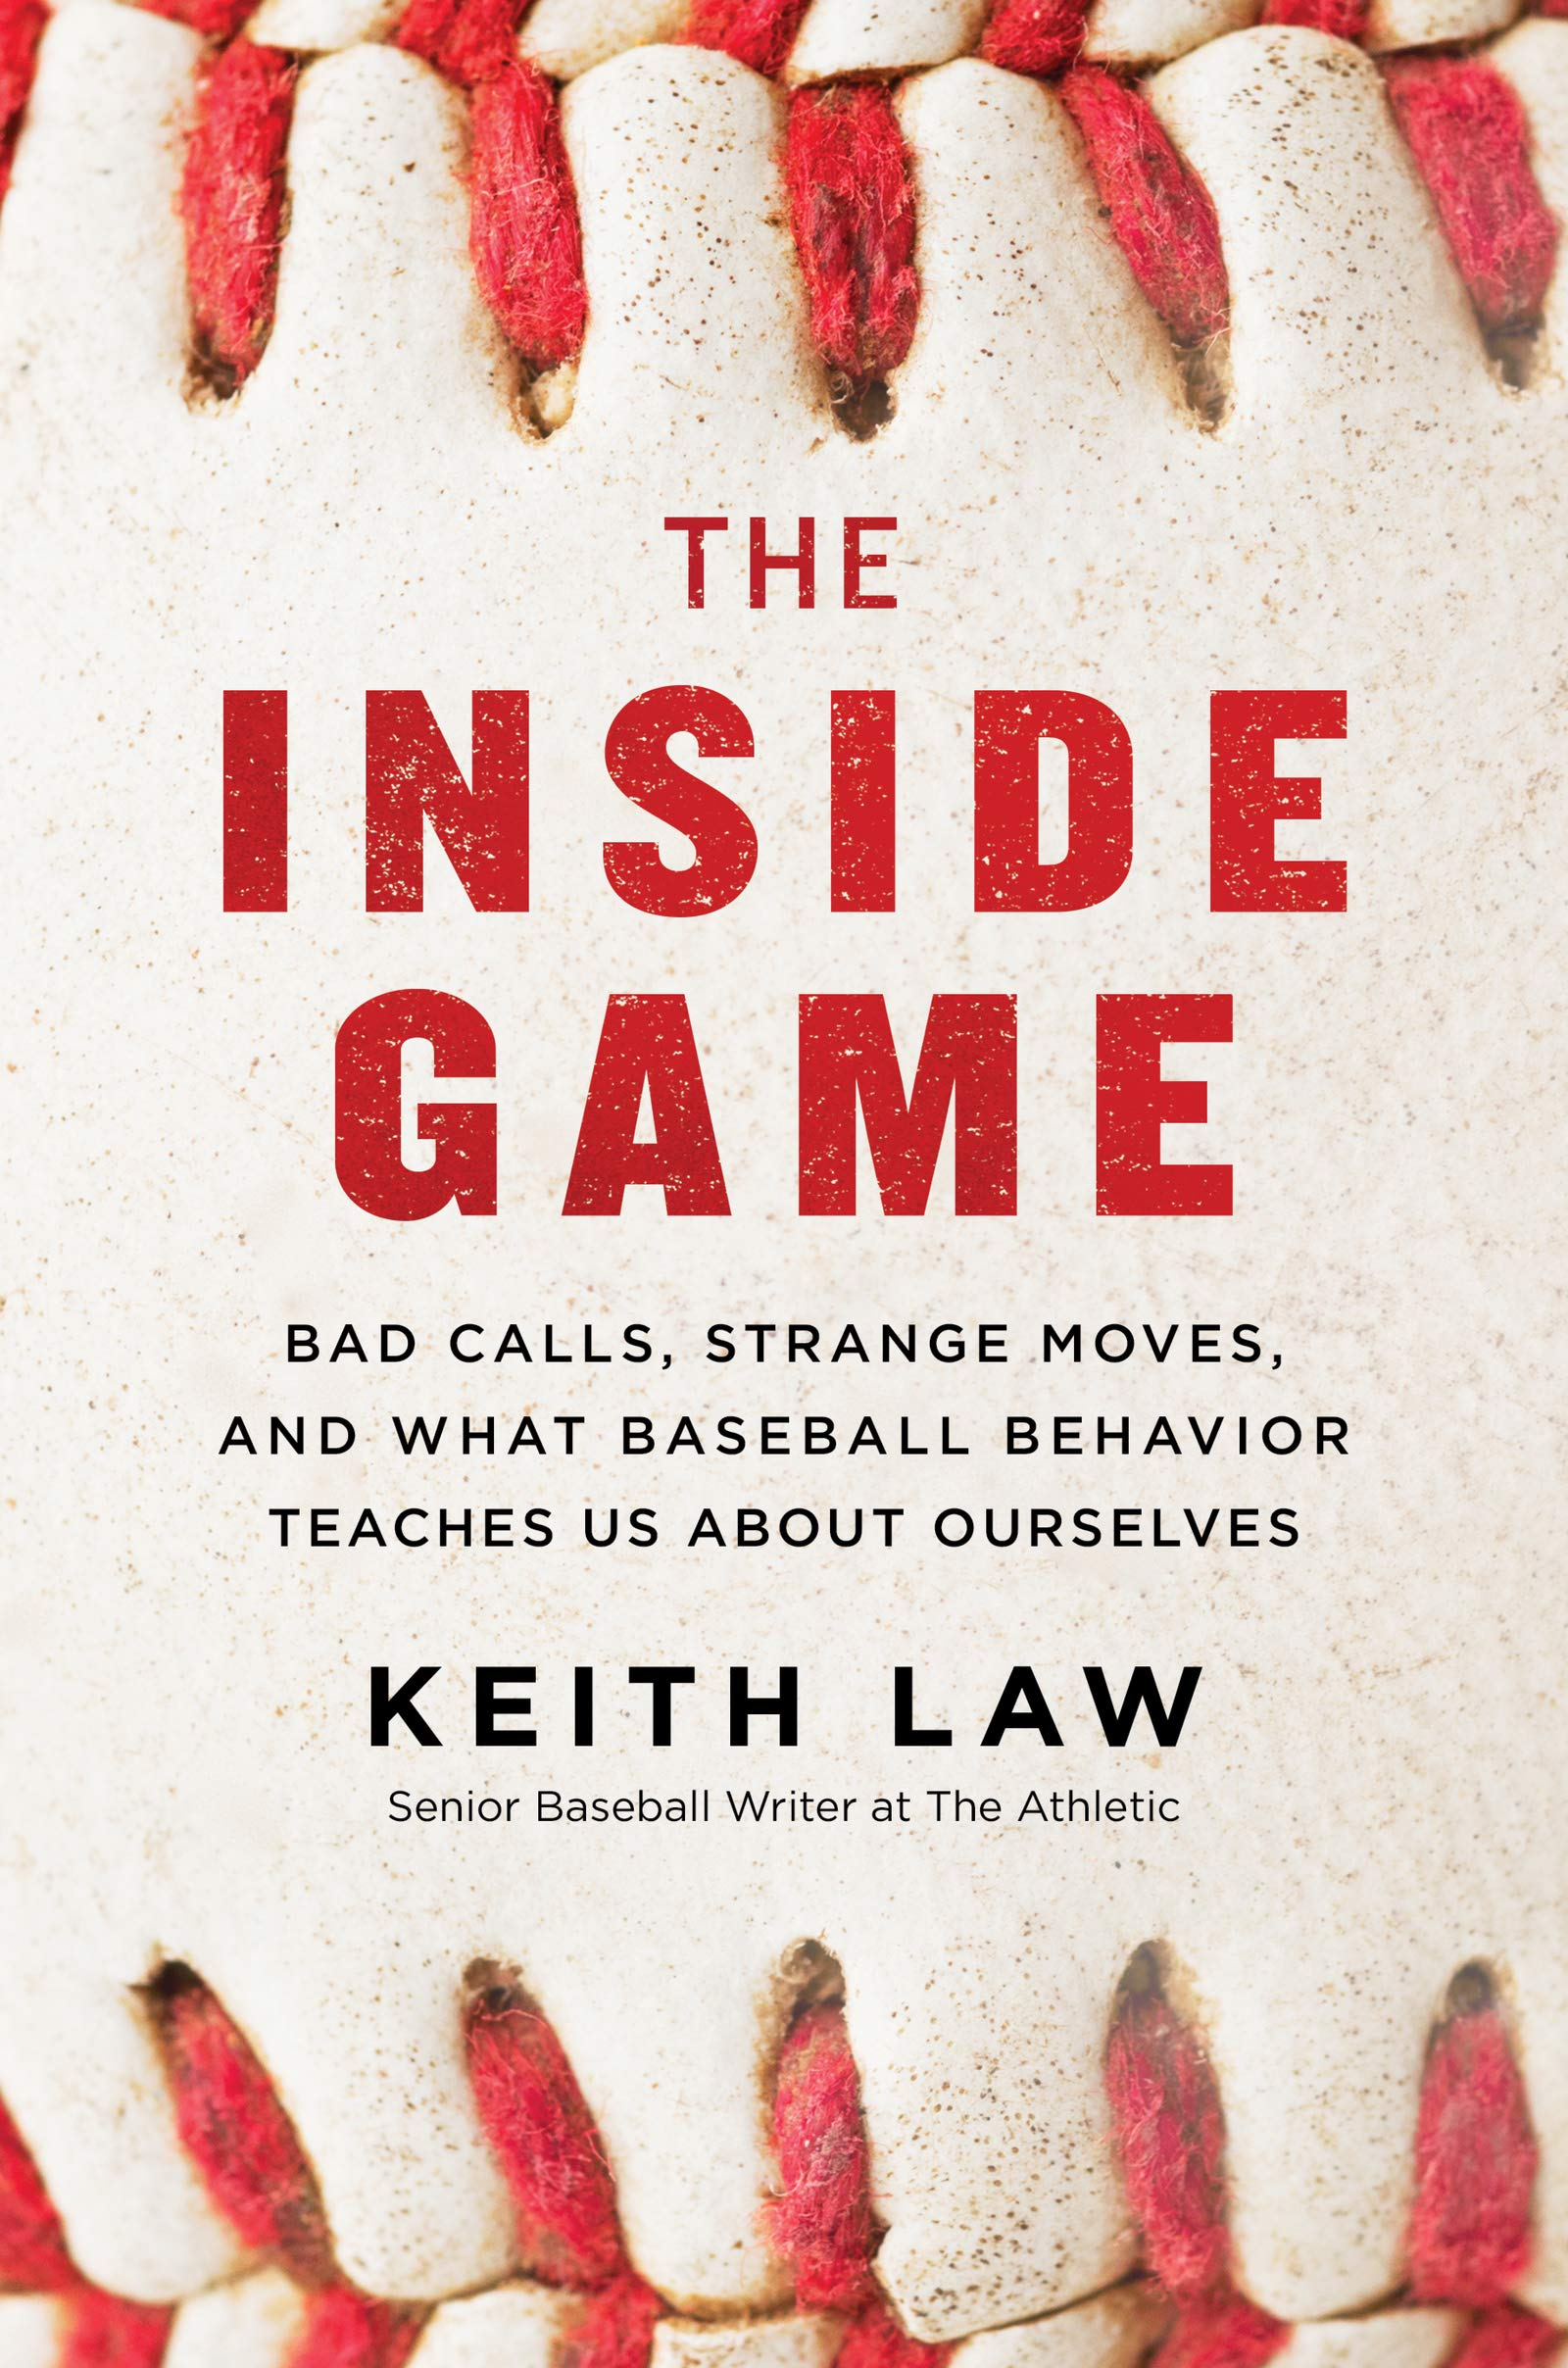 Download The Inside Game: Bad Calls, Strange Moves, And What Baseball Behavior Teaches Us About Ourselves 